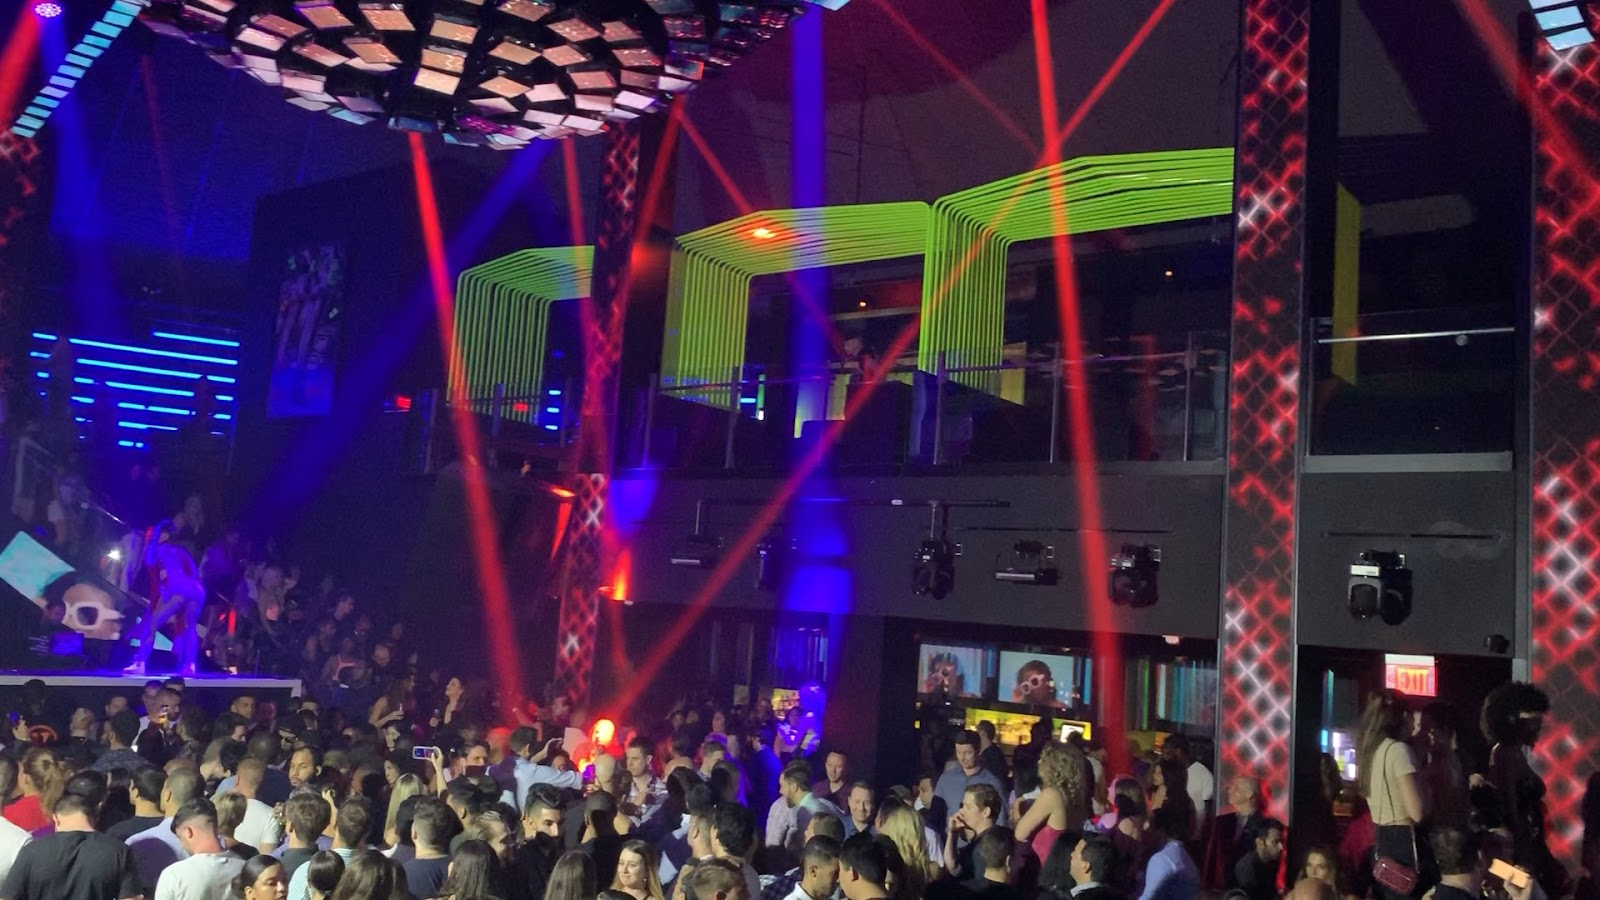 Miami Beach VIP LIV Nightclub Red Lasers